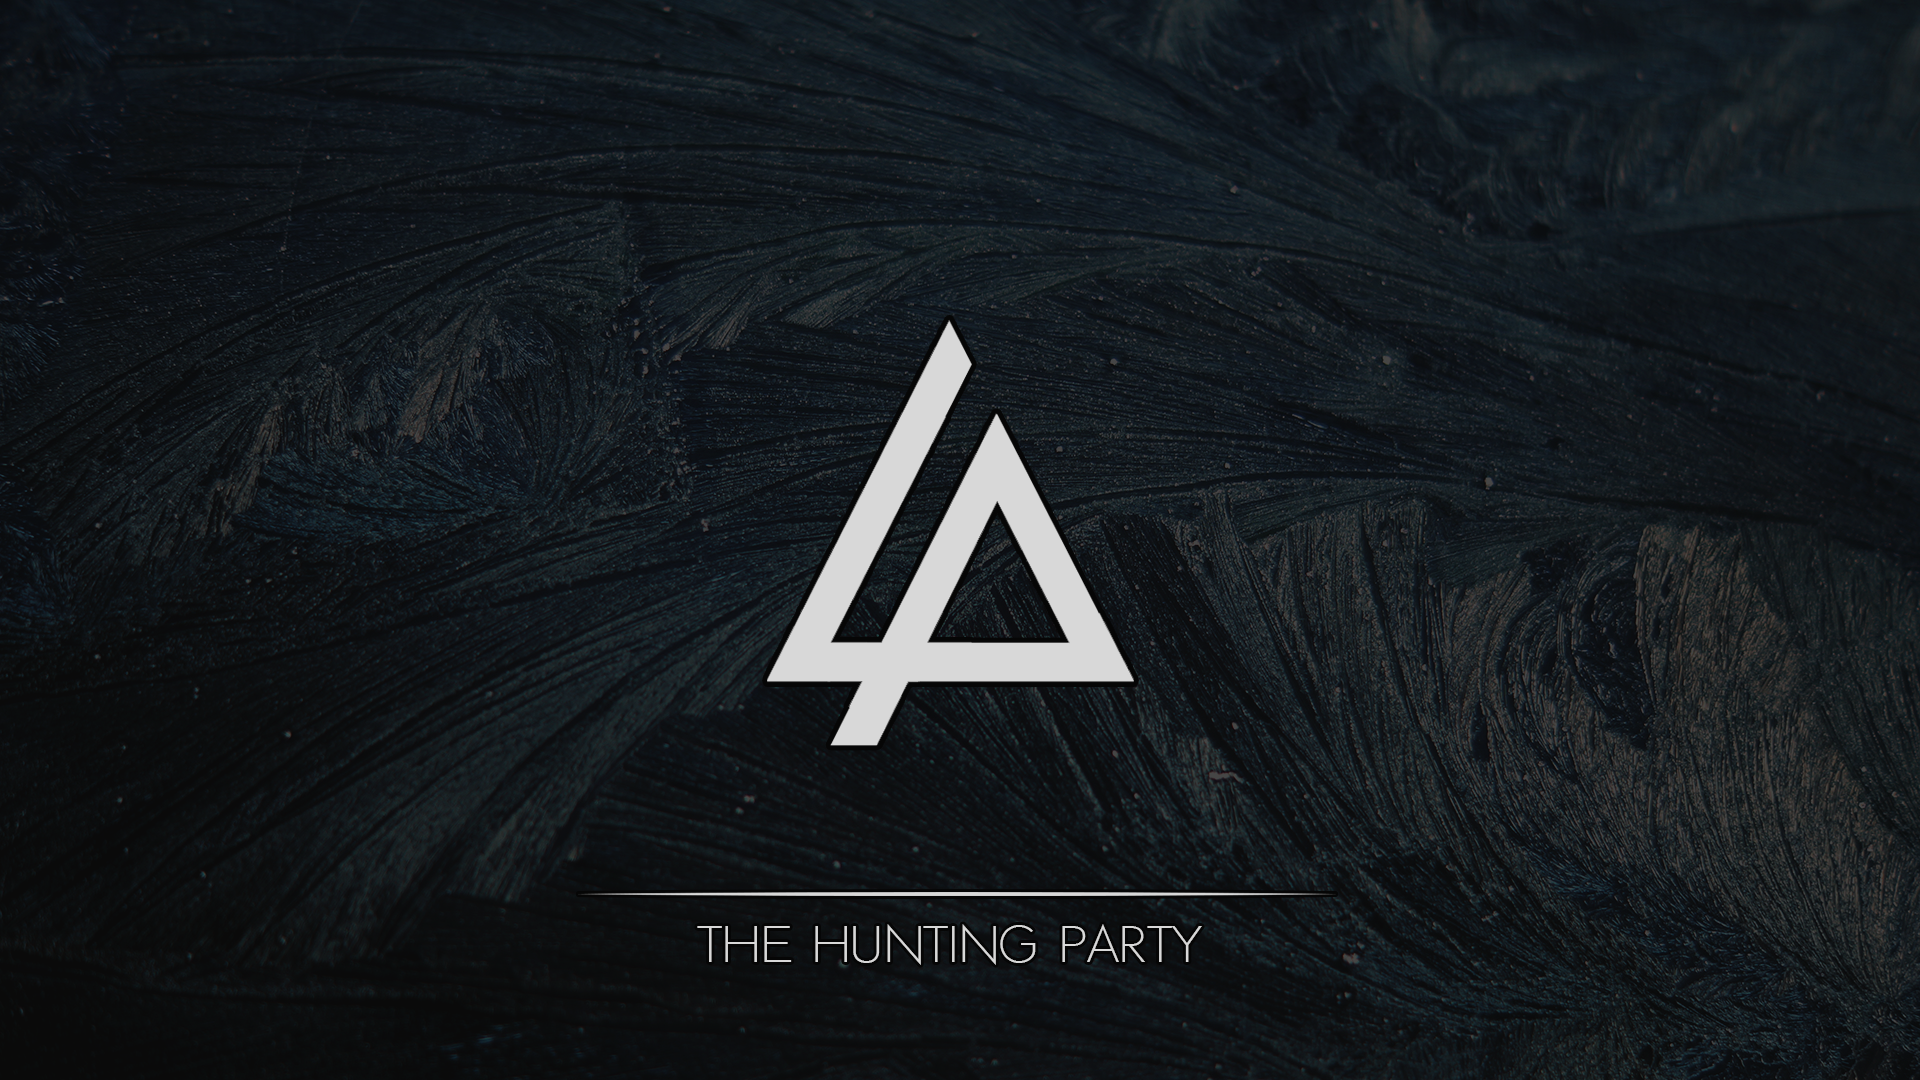 Amazing Wallpaper Music Macbook - the-hunting-party-linkin-park-hd  Graphic_625220.jpg